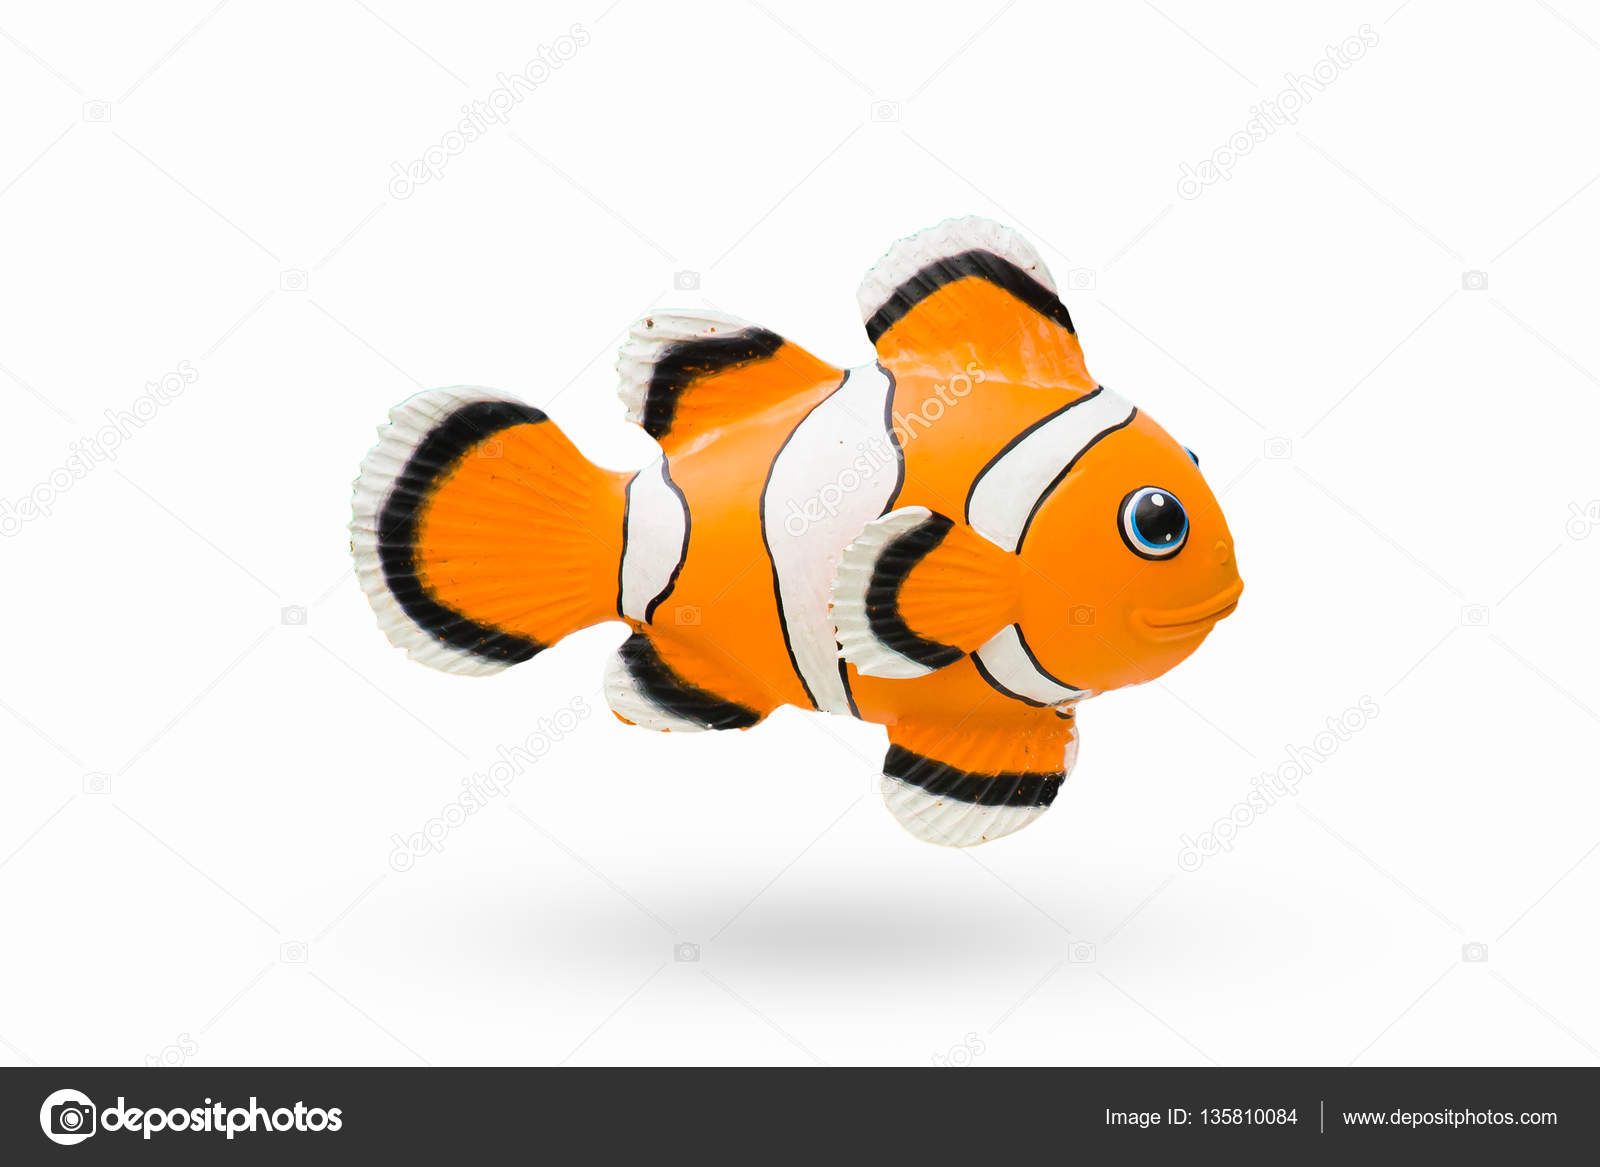 statue de couleur de dessin anim poisson nemo orange photographie meenstockphoto. Black Bedroom Furniture Sets. Home Design Ideas